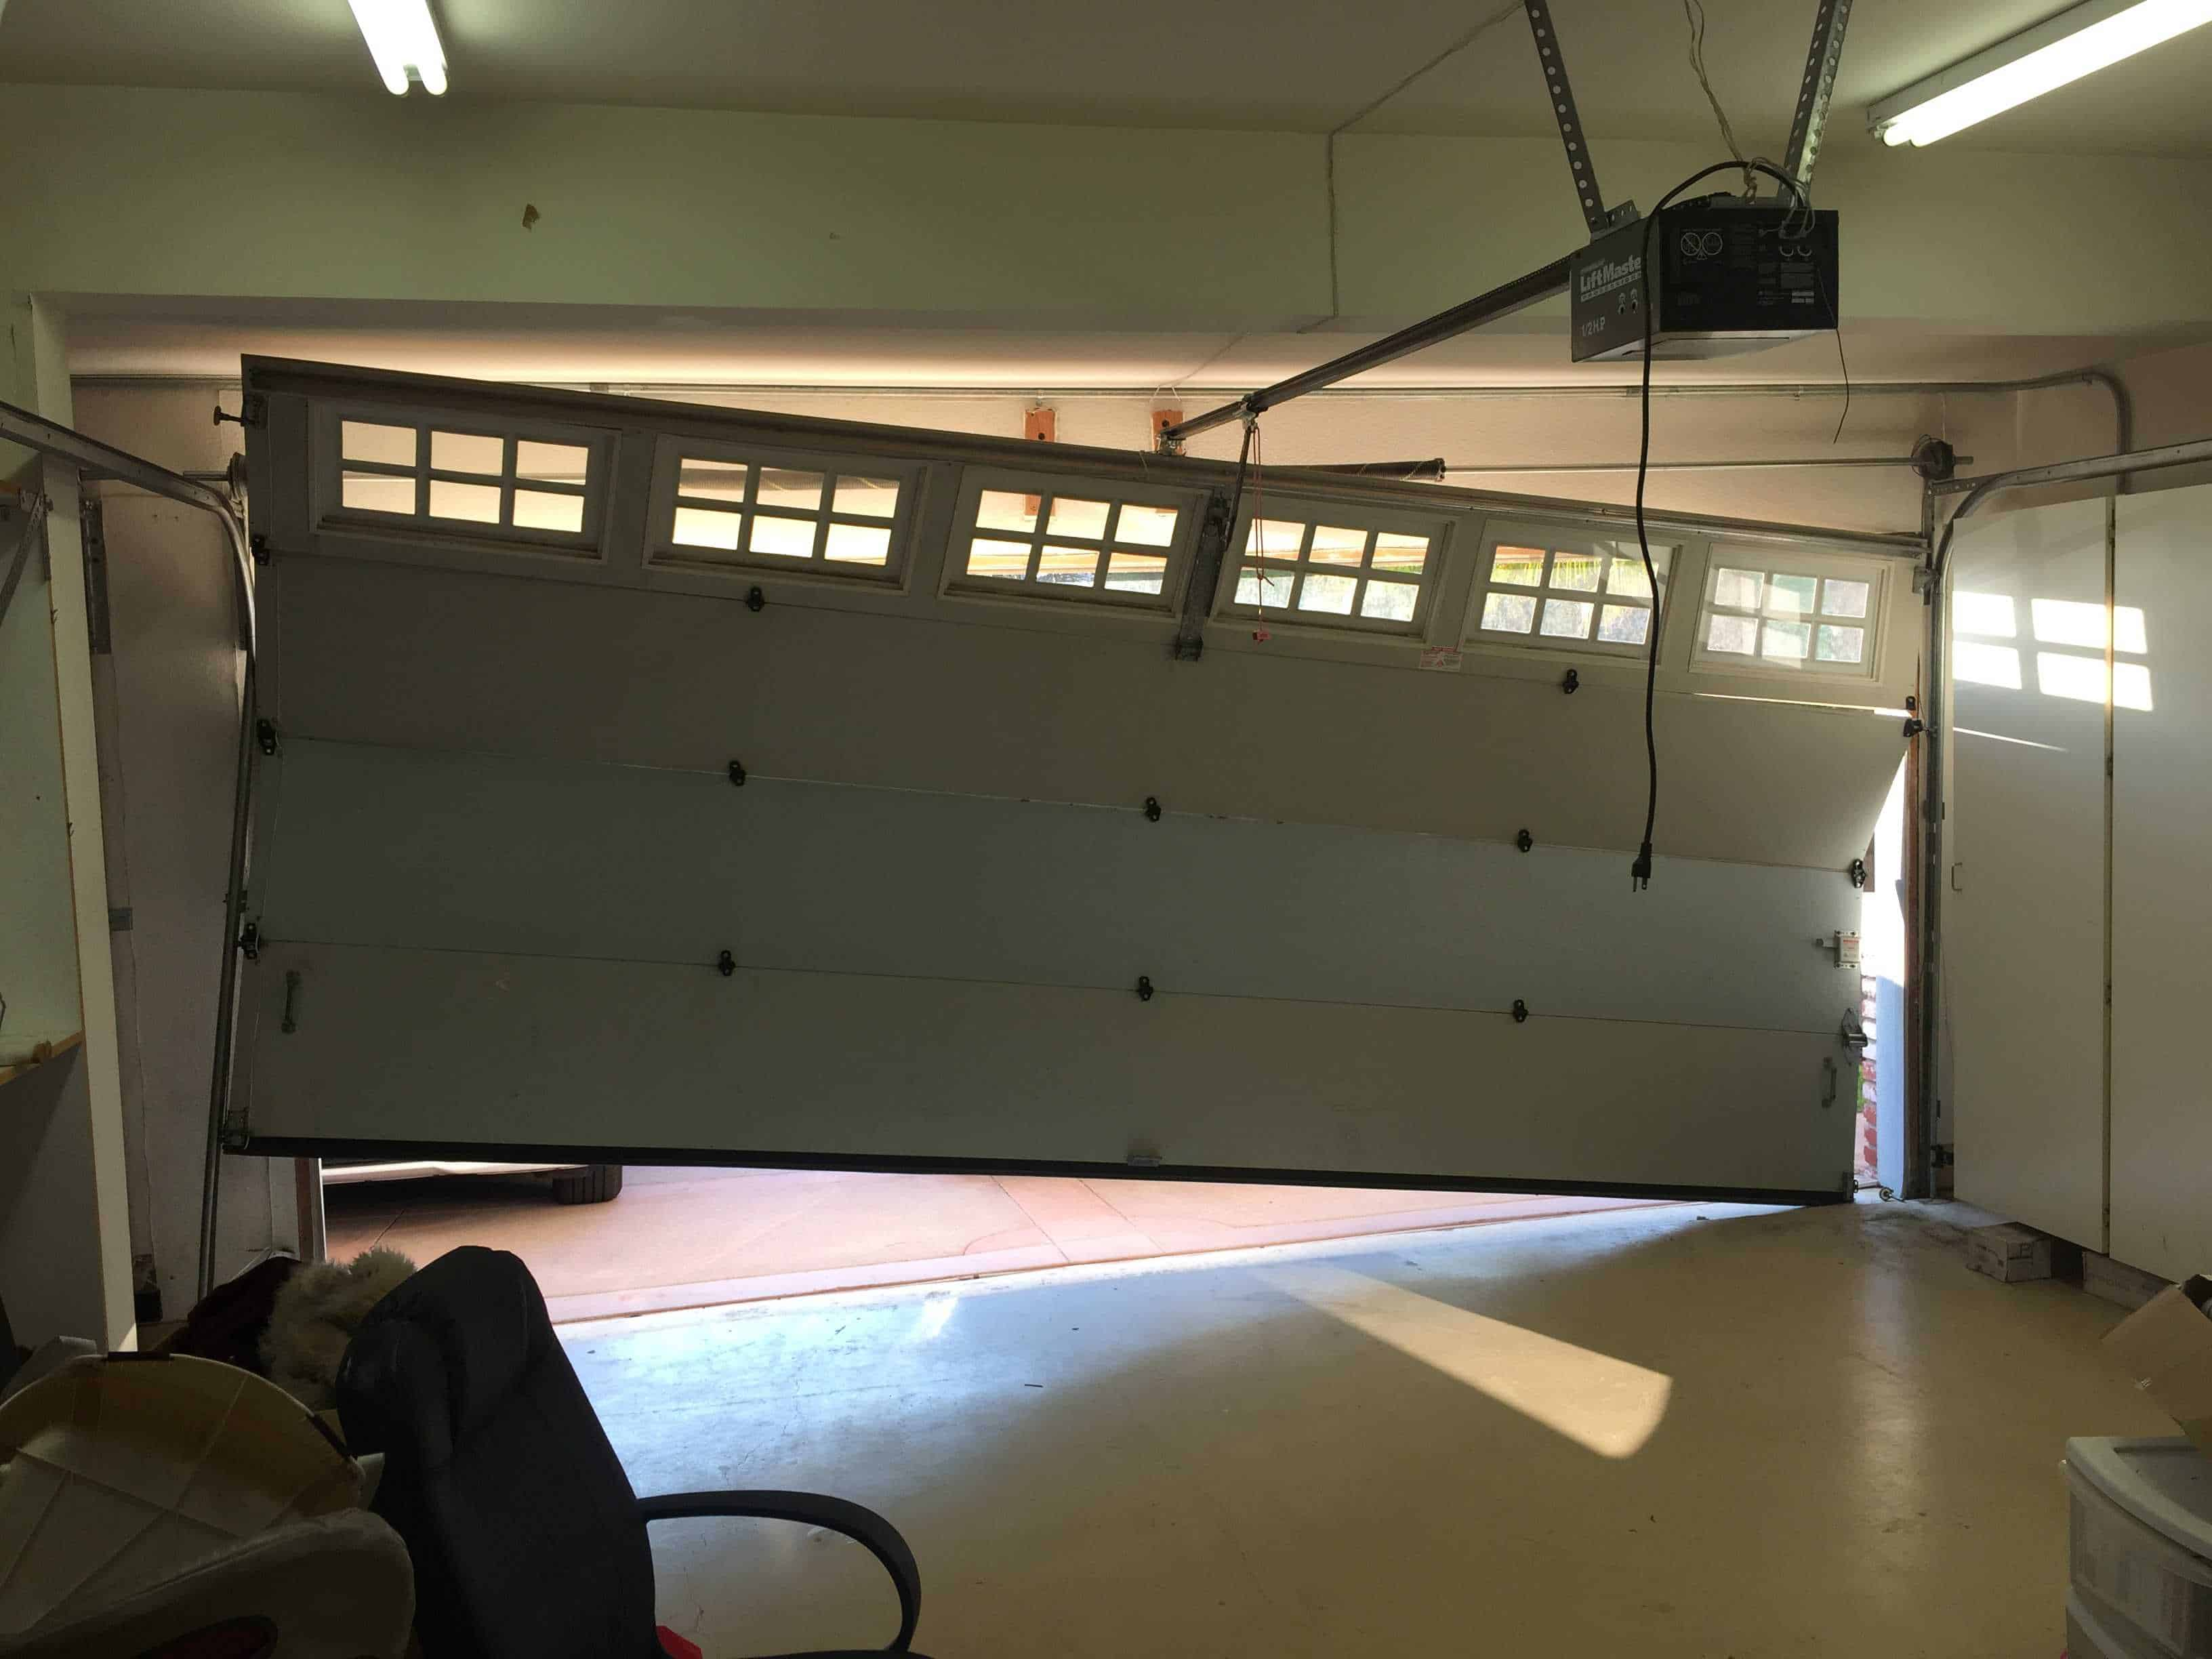 Garage Door Repair & Replacement in Pasadena CA